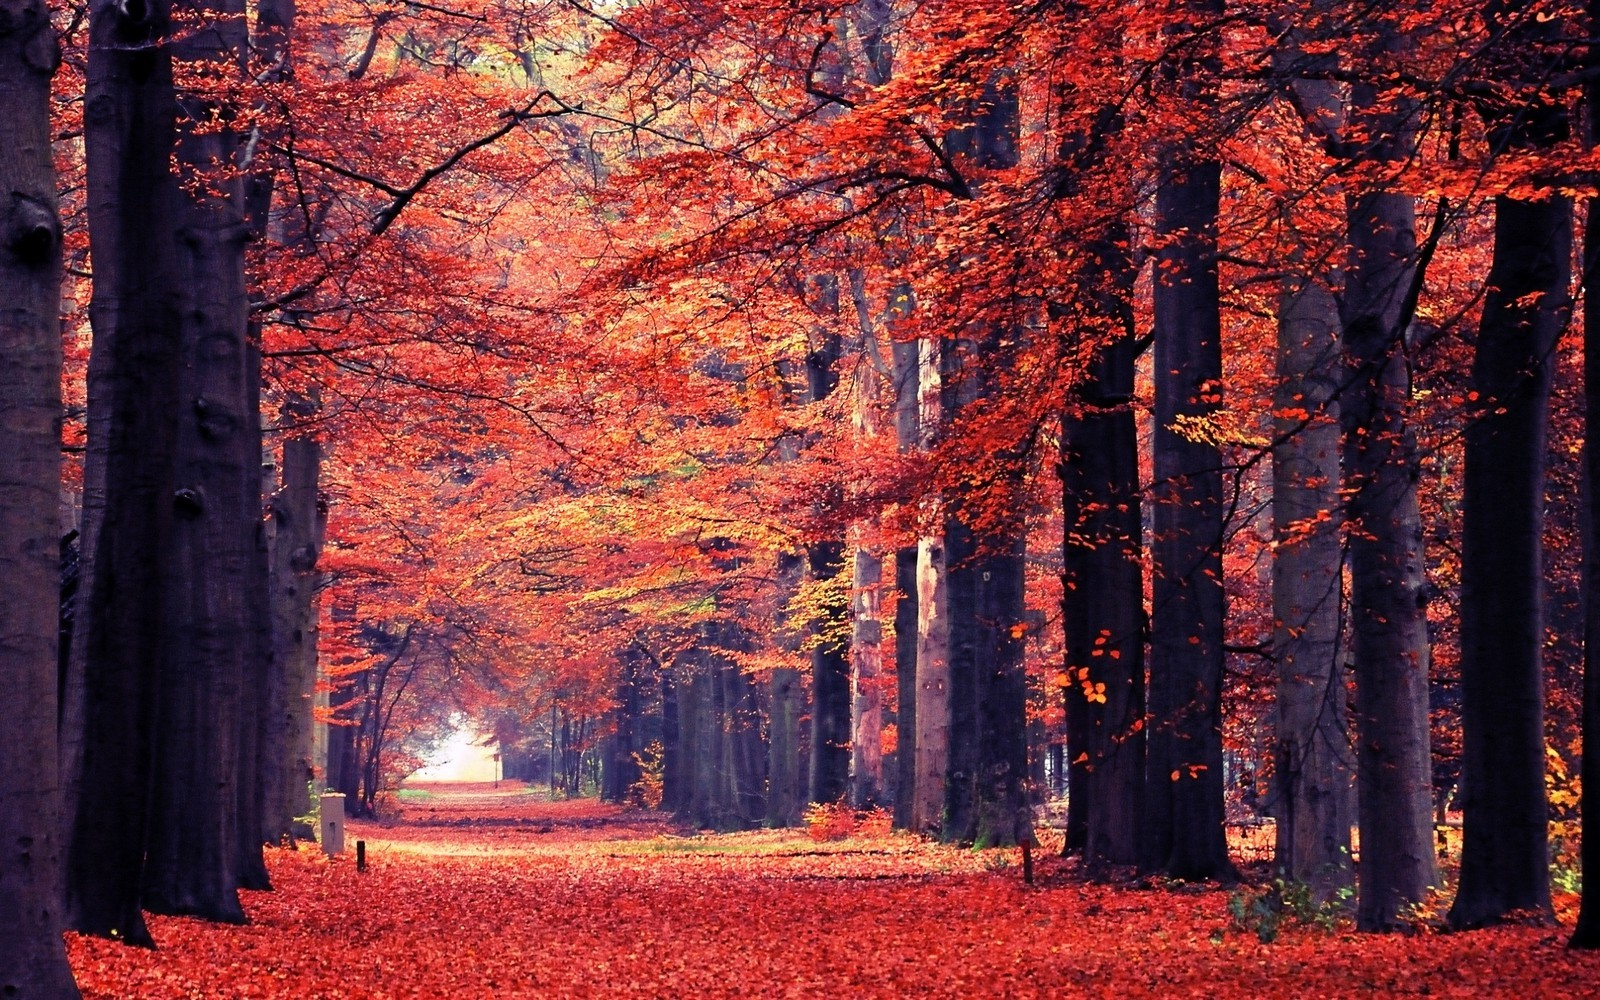 Full Screen Desktop Fall Leaves Wallpaper Nature Landscape Fall Leaves Path Trees Park Tunnel